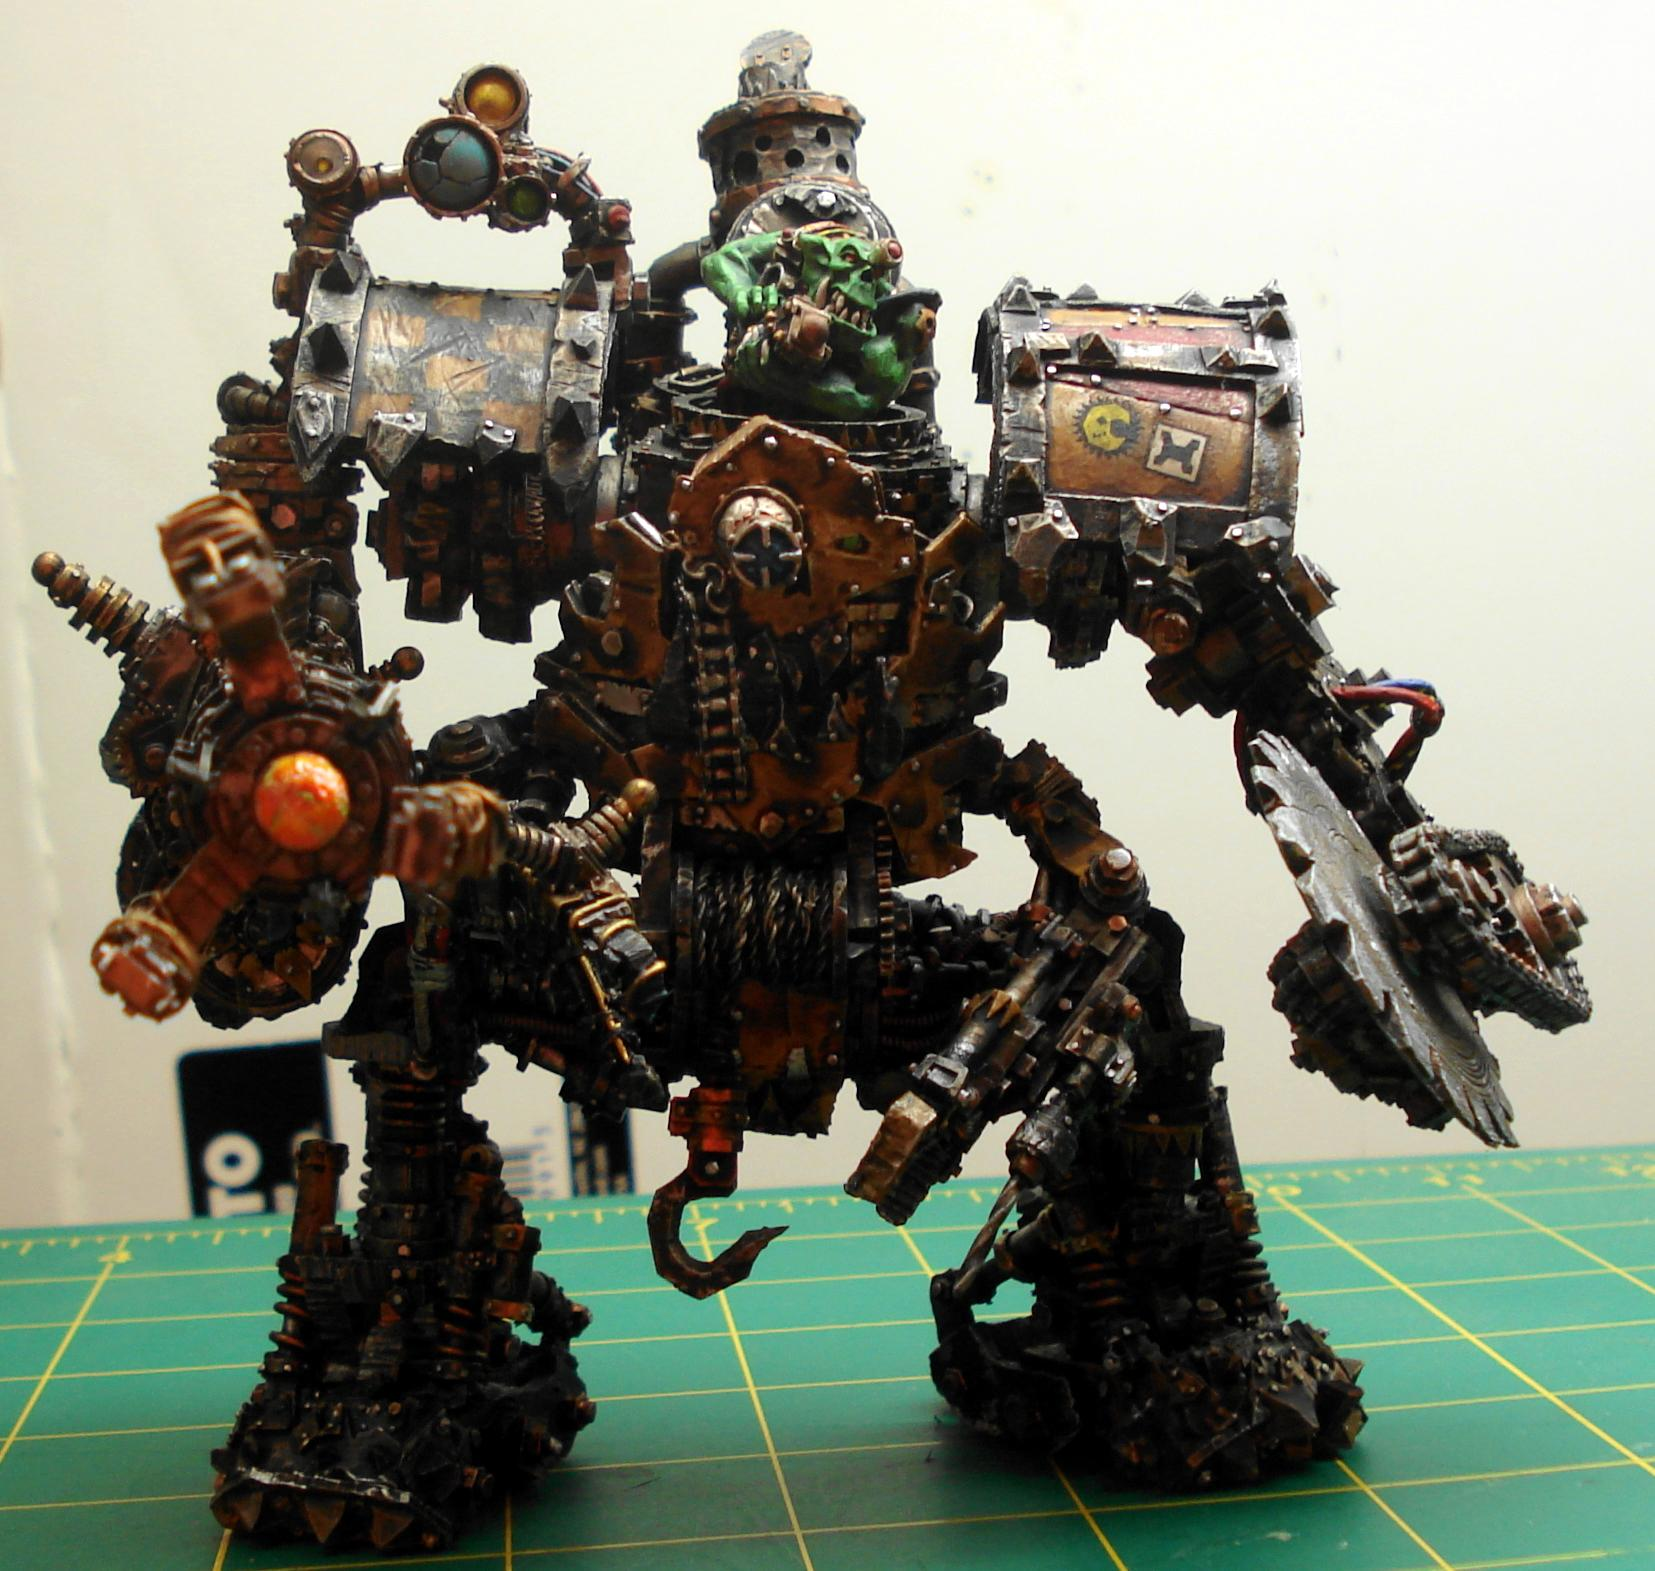 Bad, Bad Moons, Big, Bot, Custom, Dakka Dakka, Deff, Dreadnought, Dred, Drinker, Forge, Forge World, Gretchin, Grots, Junka, Kill, Kit, Meka, Mekboy, Moon, Orcs, Orks, Power, Runt, Runtbot, Saw, Shunta, Soul, Space, Warboss, World